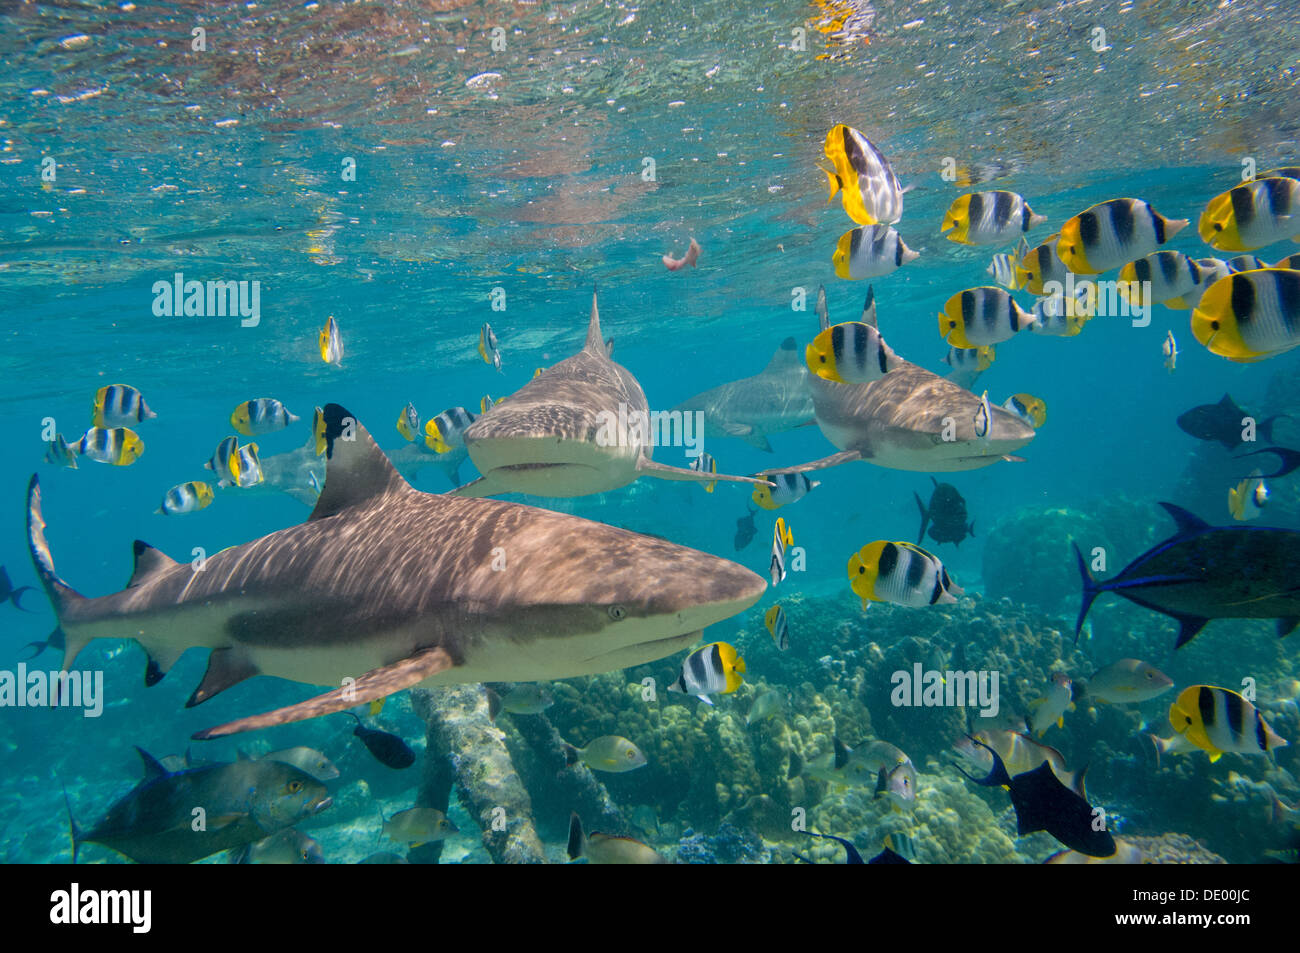 Black-tipped reef sharks (Carcharhinus melanopterus) swimming amidst Pacific Double-saddle Butterflyfish (Chaetodon Stock Photo